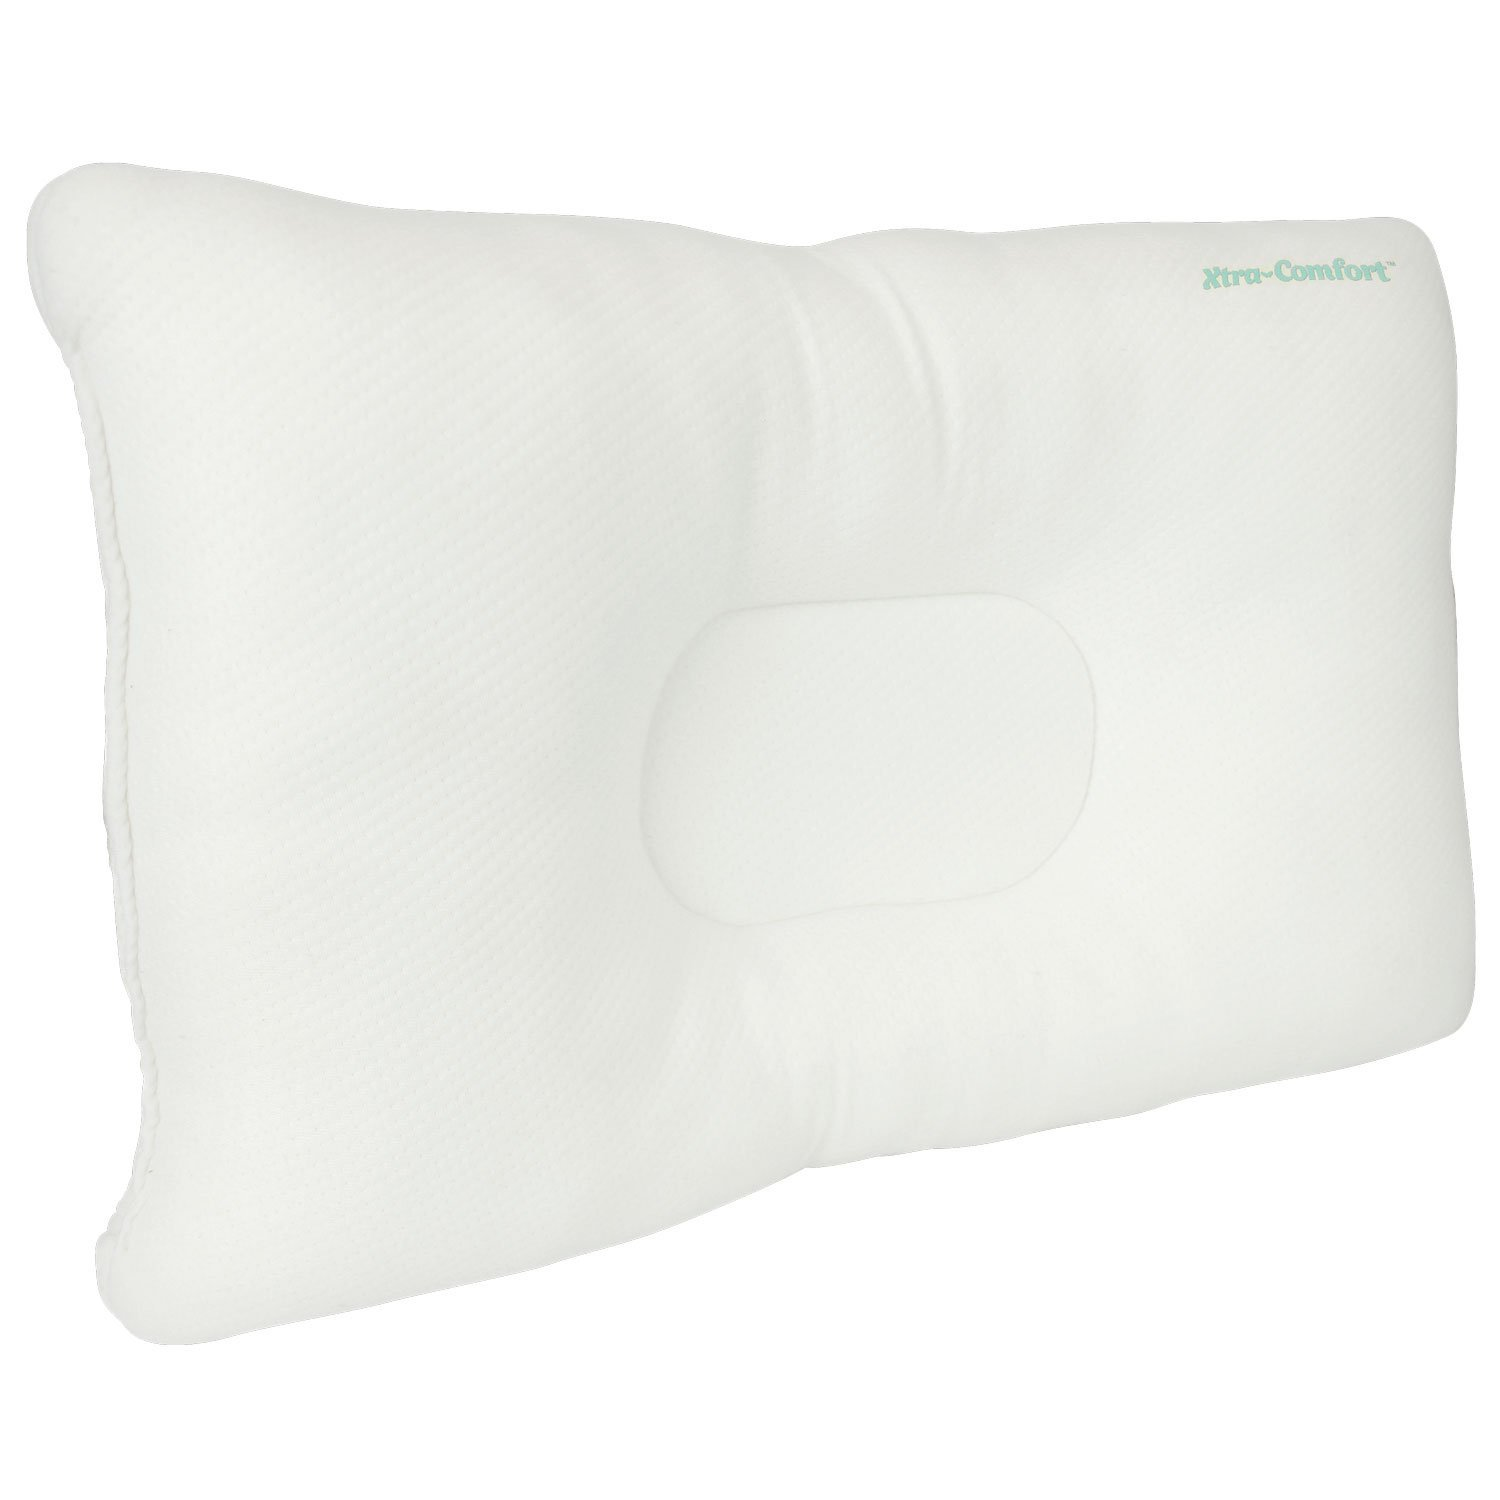 Xtra-Comfort Orthopedic combination Pillow